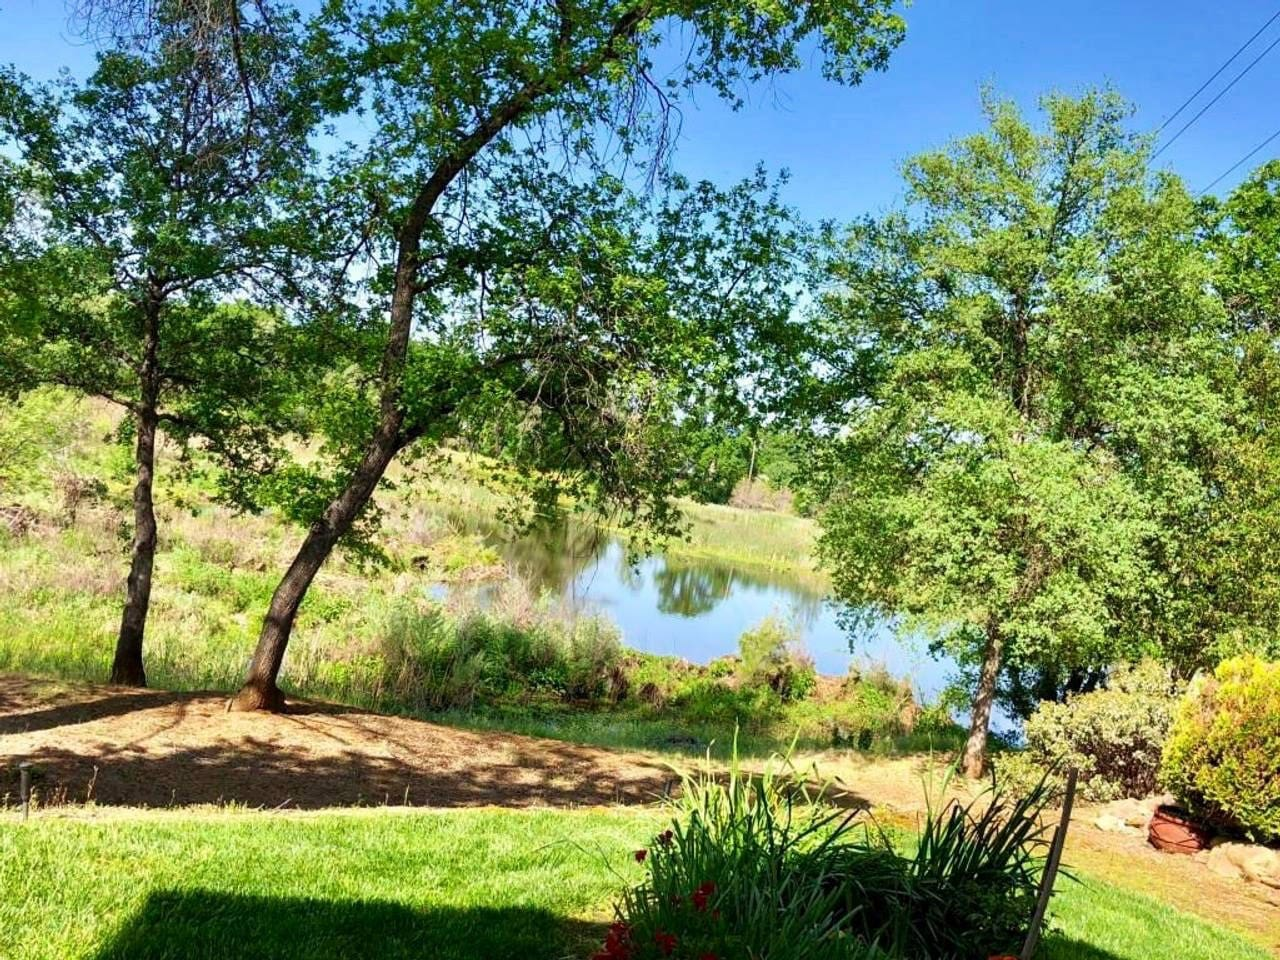 Relax outside in the backyard and enjoy Redding nature in a private setting.